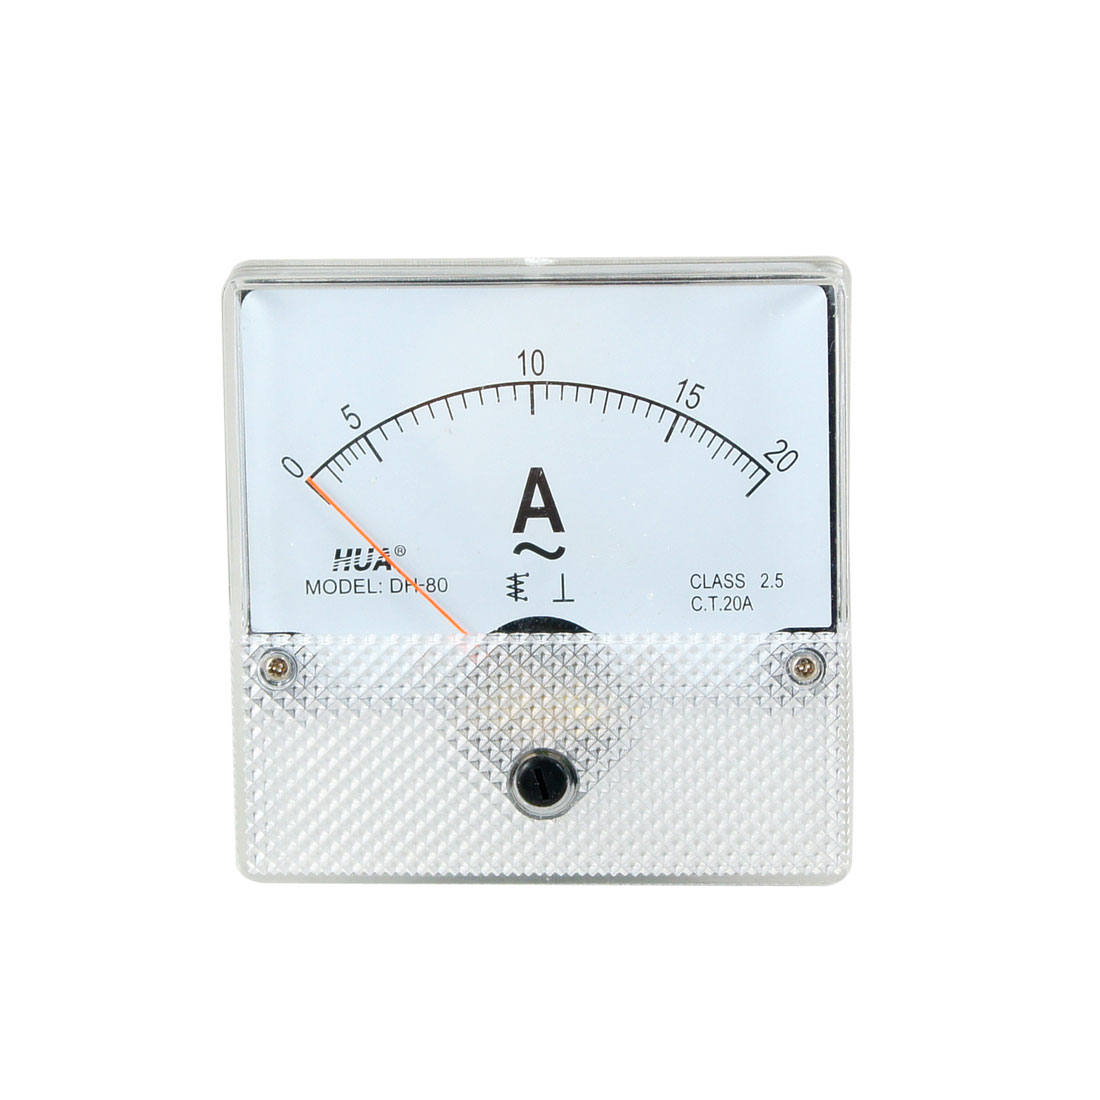 Analogue Needle AC 0-20A Class 2.5 Accuracy Analog Amperemeter